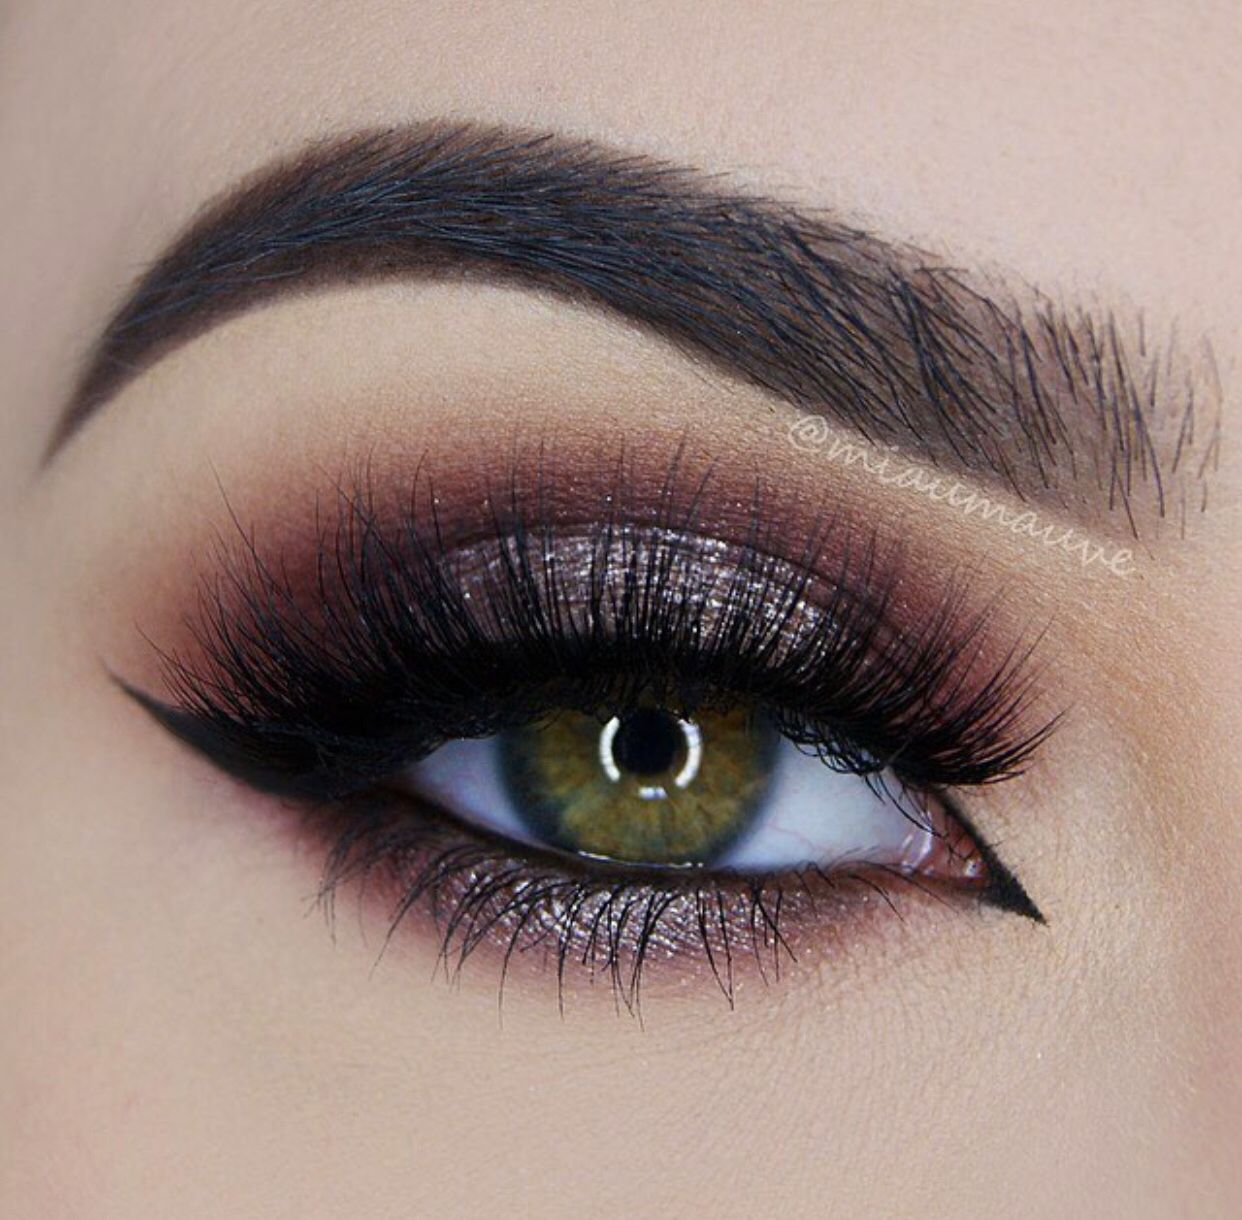 Stunning eye makeup shimmer over rich plum, black eyeliner